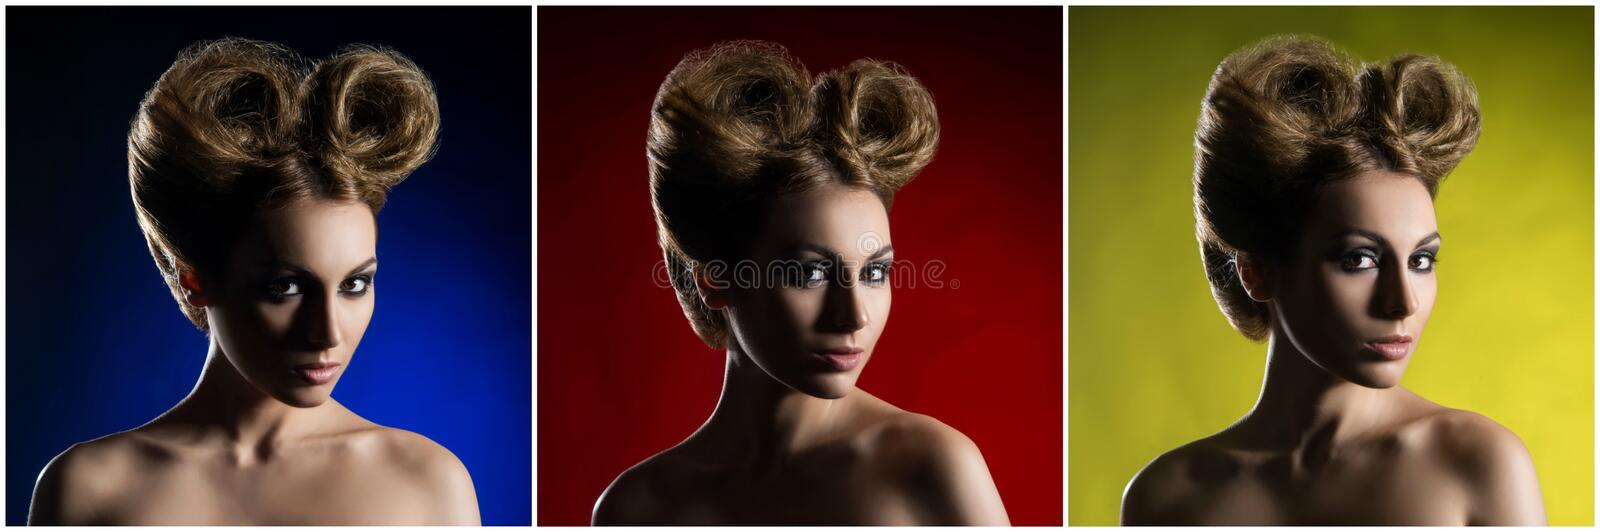 Portrait of a beautiful woman with a glamour haircut over colored background stock photos